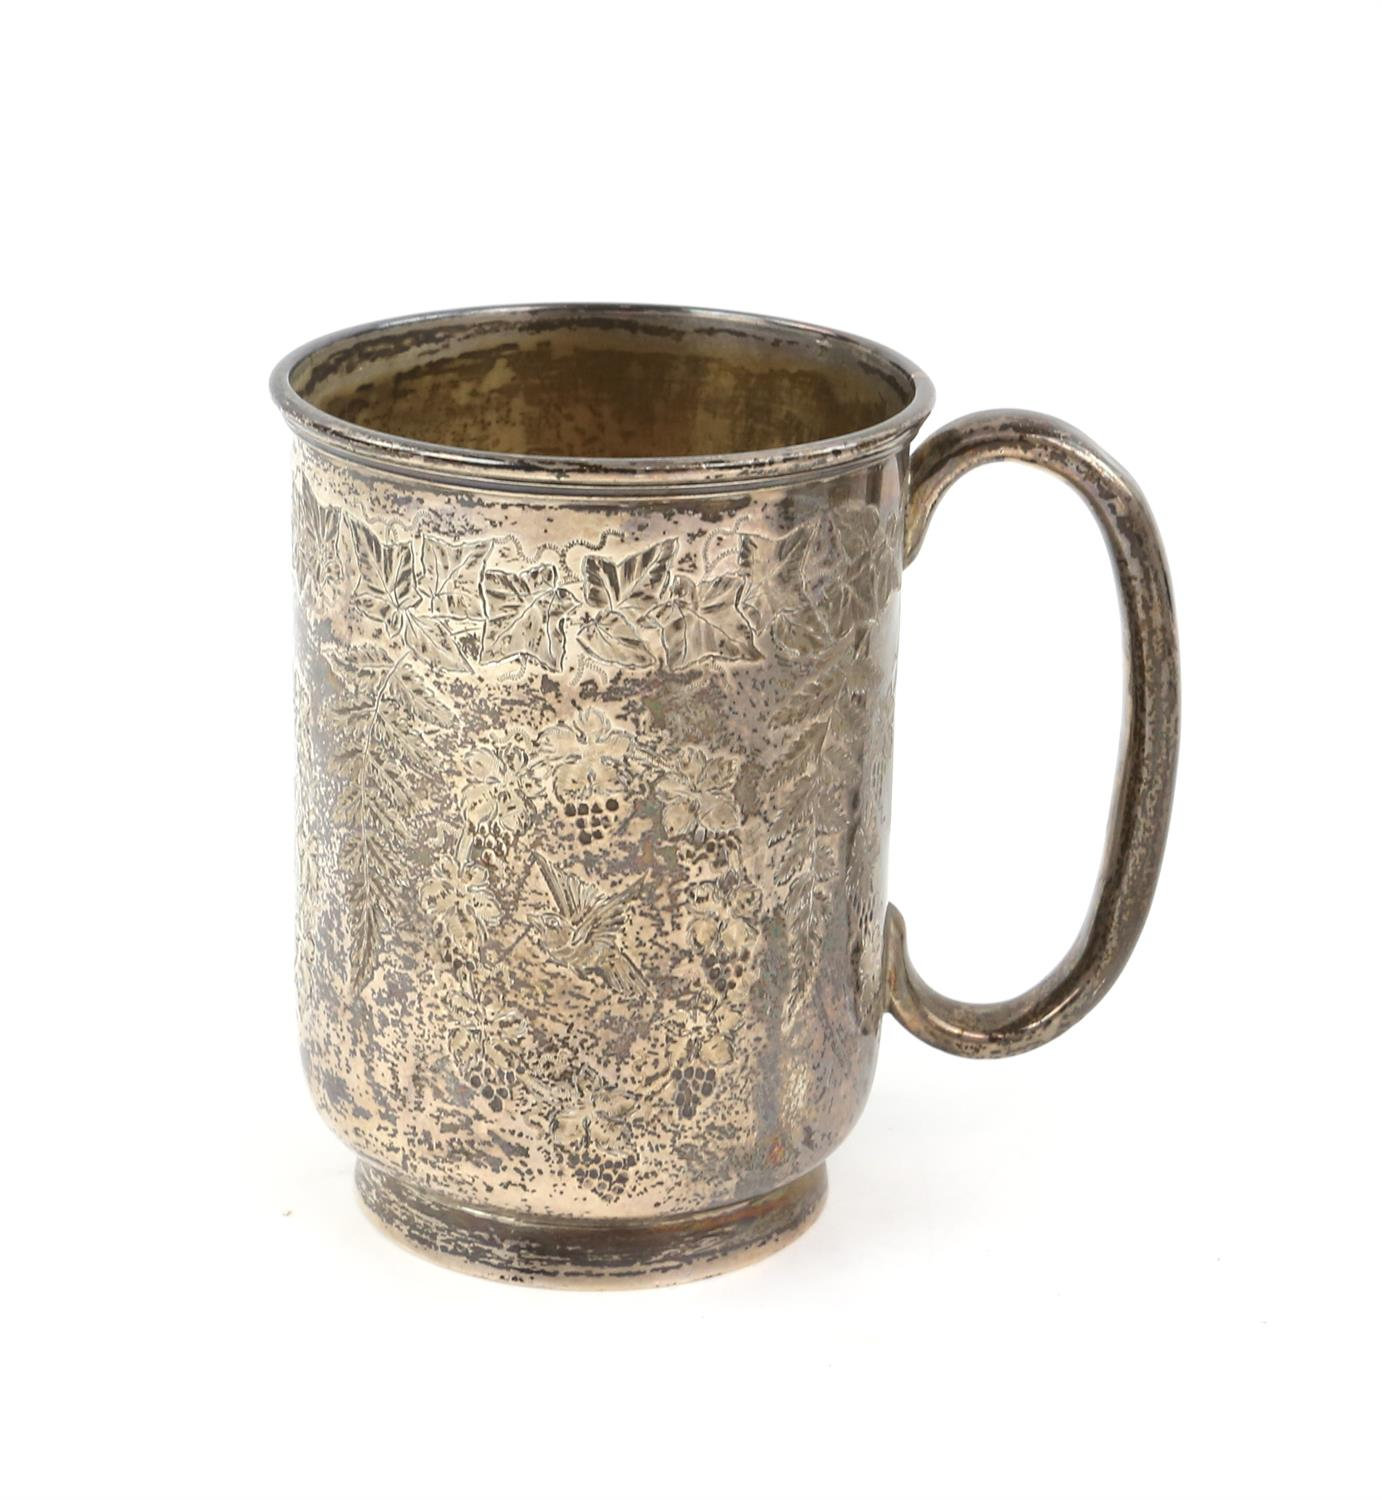 Victorian fern engraved silver mug, a silver sauce boat, a silver small trophy cup 403 grms 13 ozs - Image 6 of 10